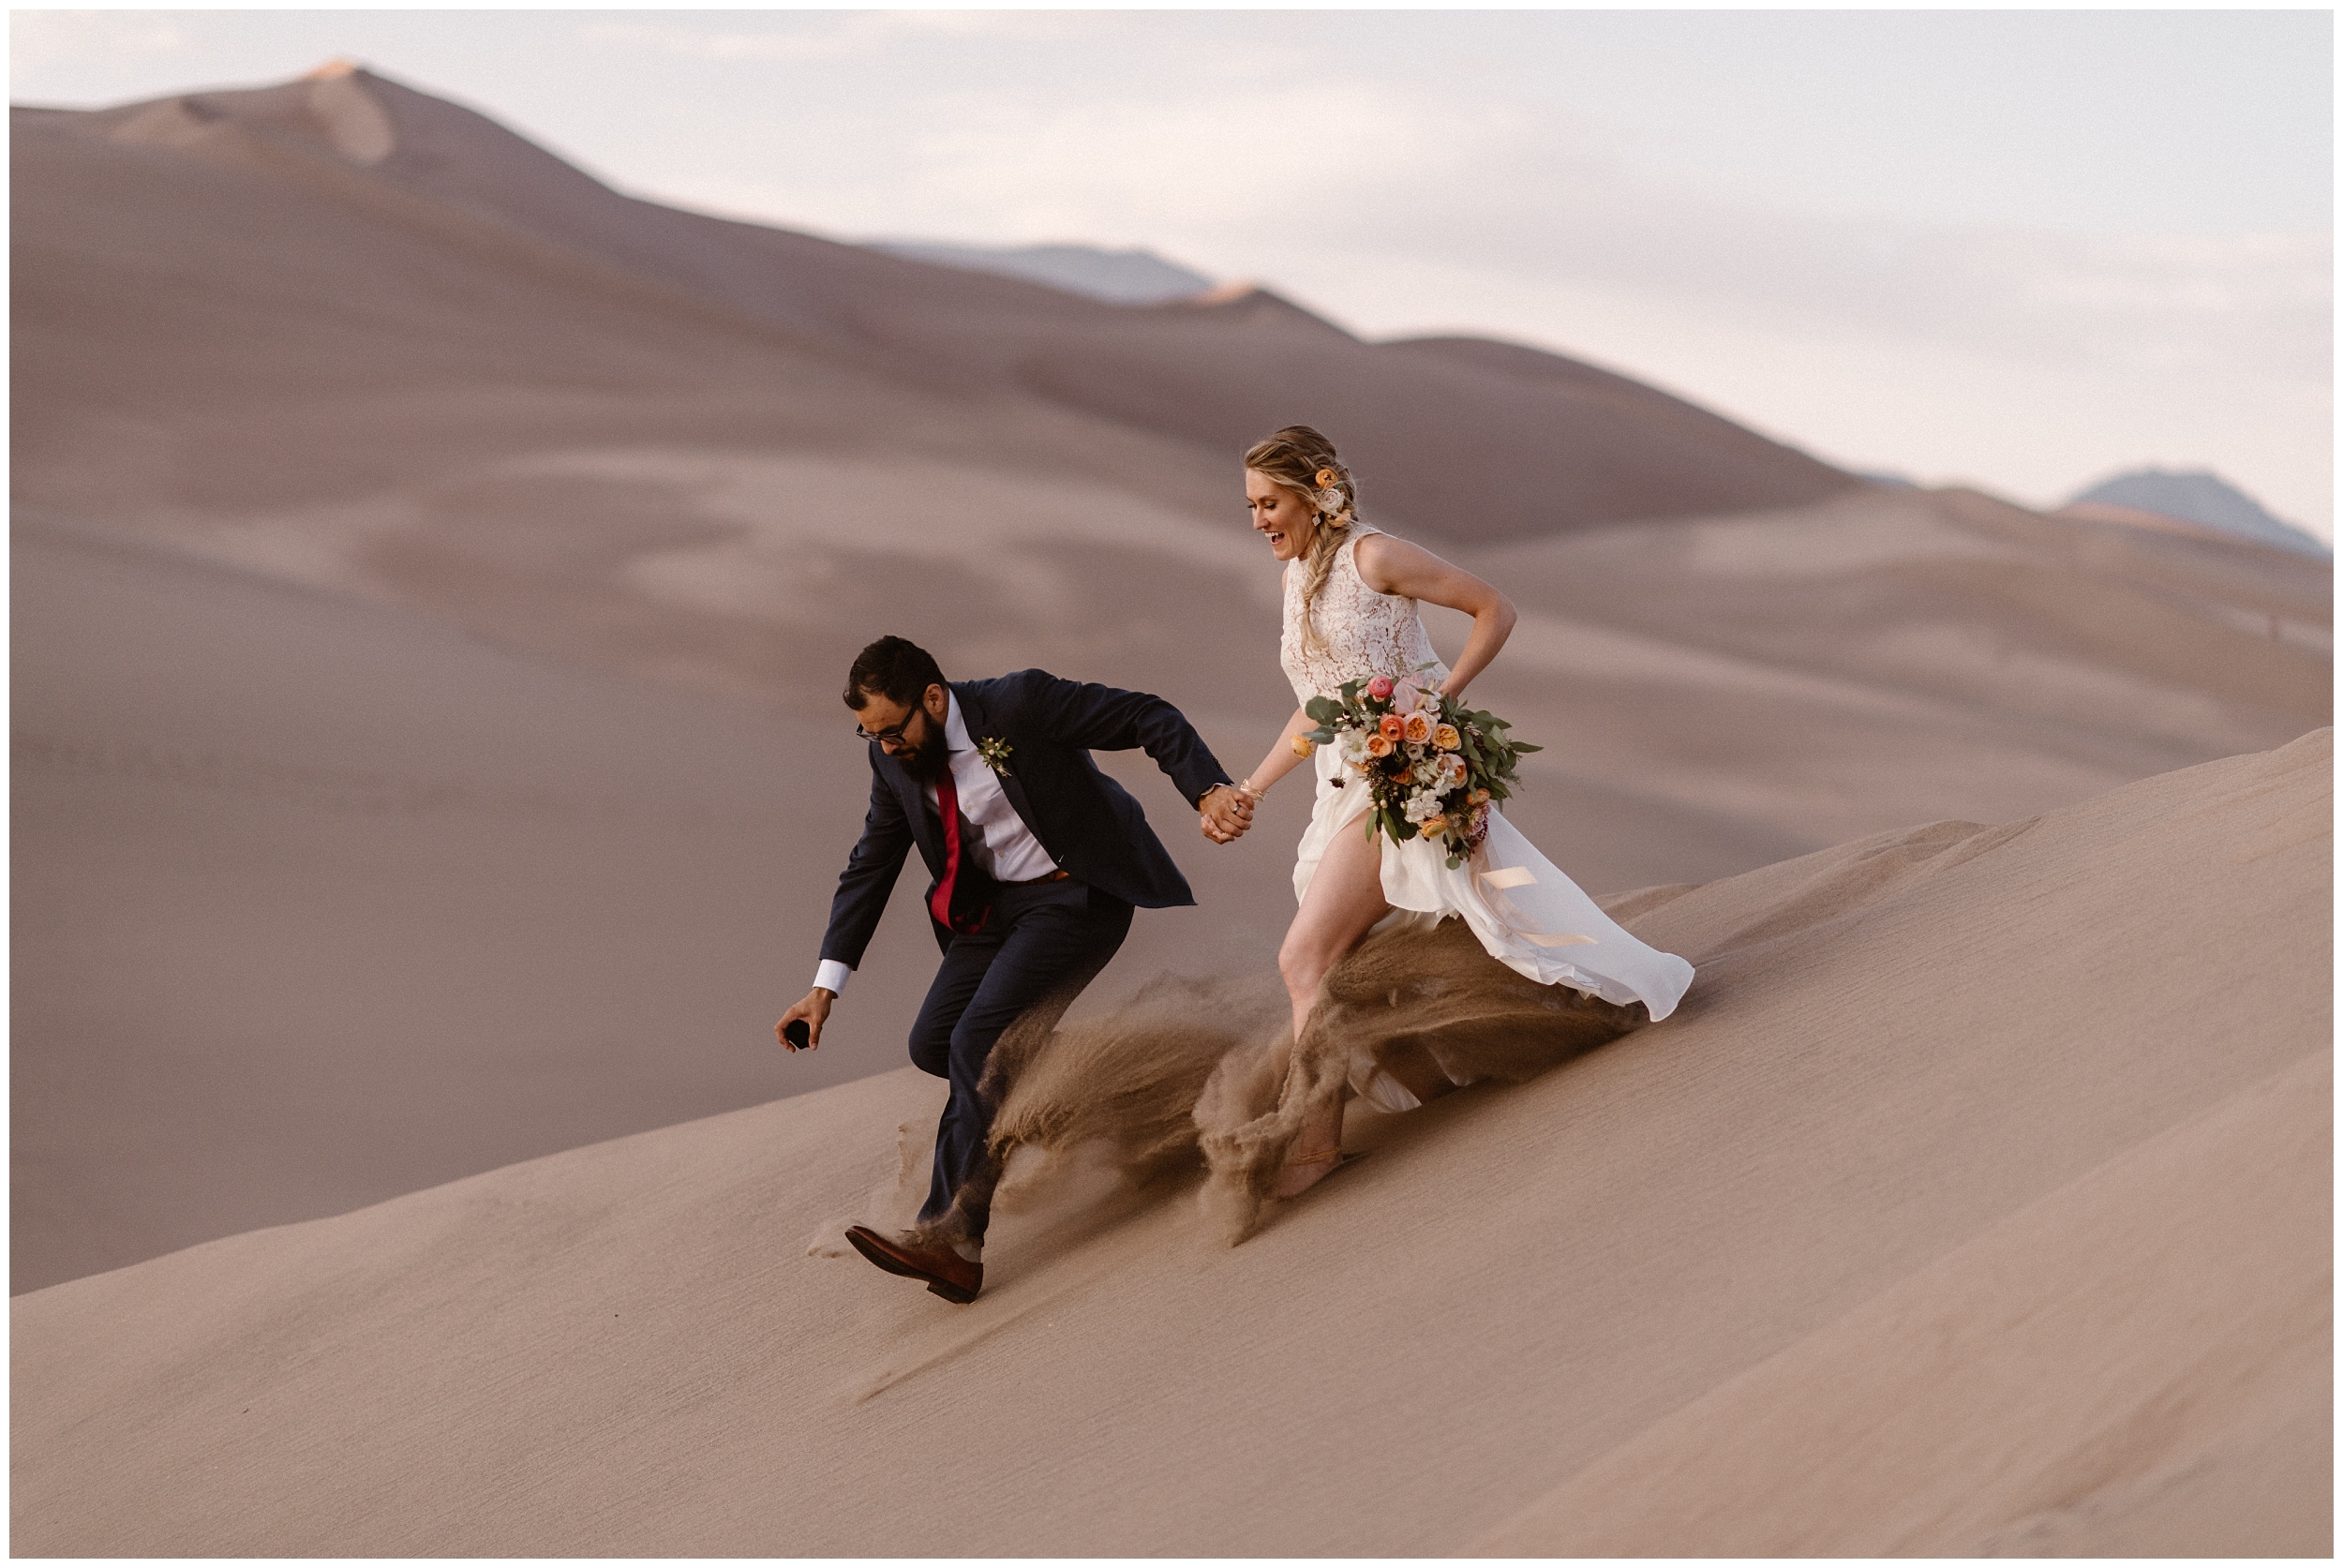 A bride and groom slip and slide down a sand dune in Colorado's Great Sand Dunes National Park. Decked out in their wedding attire, they take hands and run down the dune together. These adventure elopement photos were captured by Adventure Instead, elopement wedding photographers.